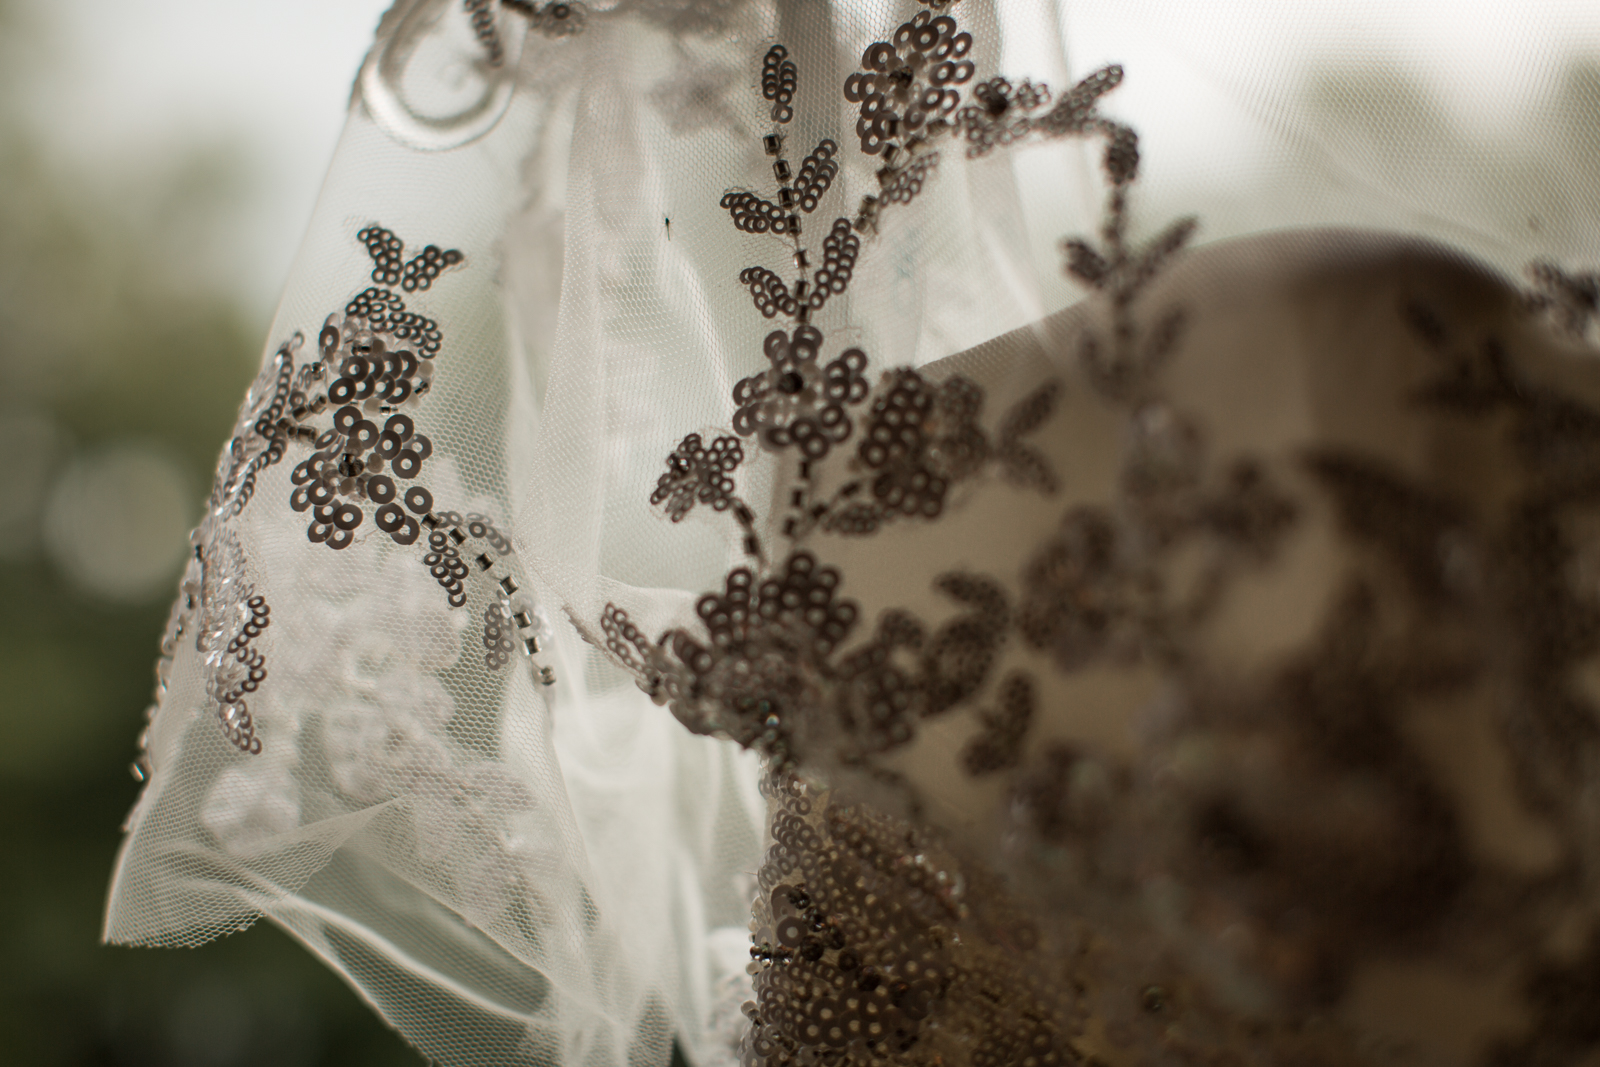 8Willow_and_Wolf_Photography_Katie_and_James_Waterton_Wedding_Blog45-Willow_and_Wolf_Photography_Katie_and_James_Waterton_Wedding_GettingReady_BEC_3160